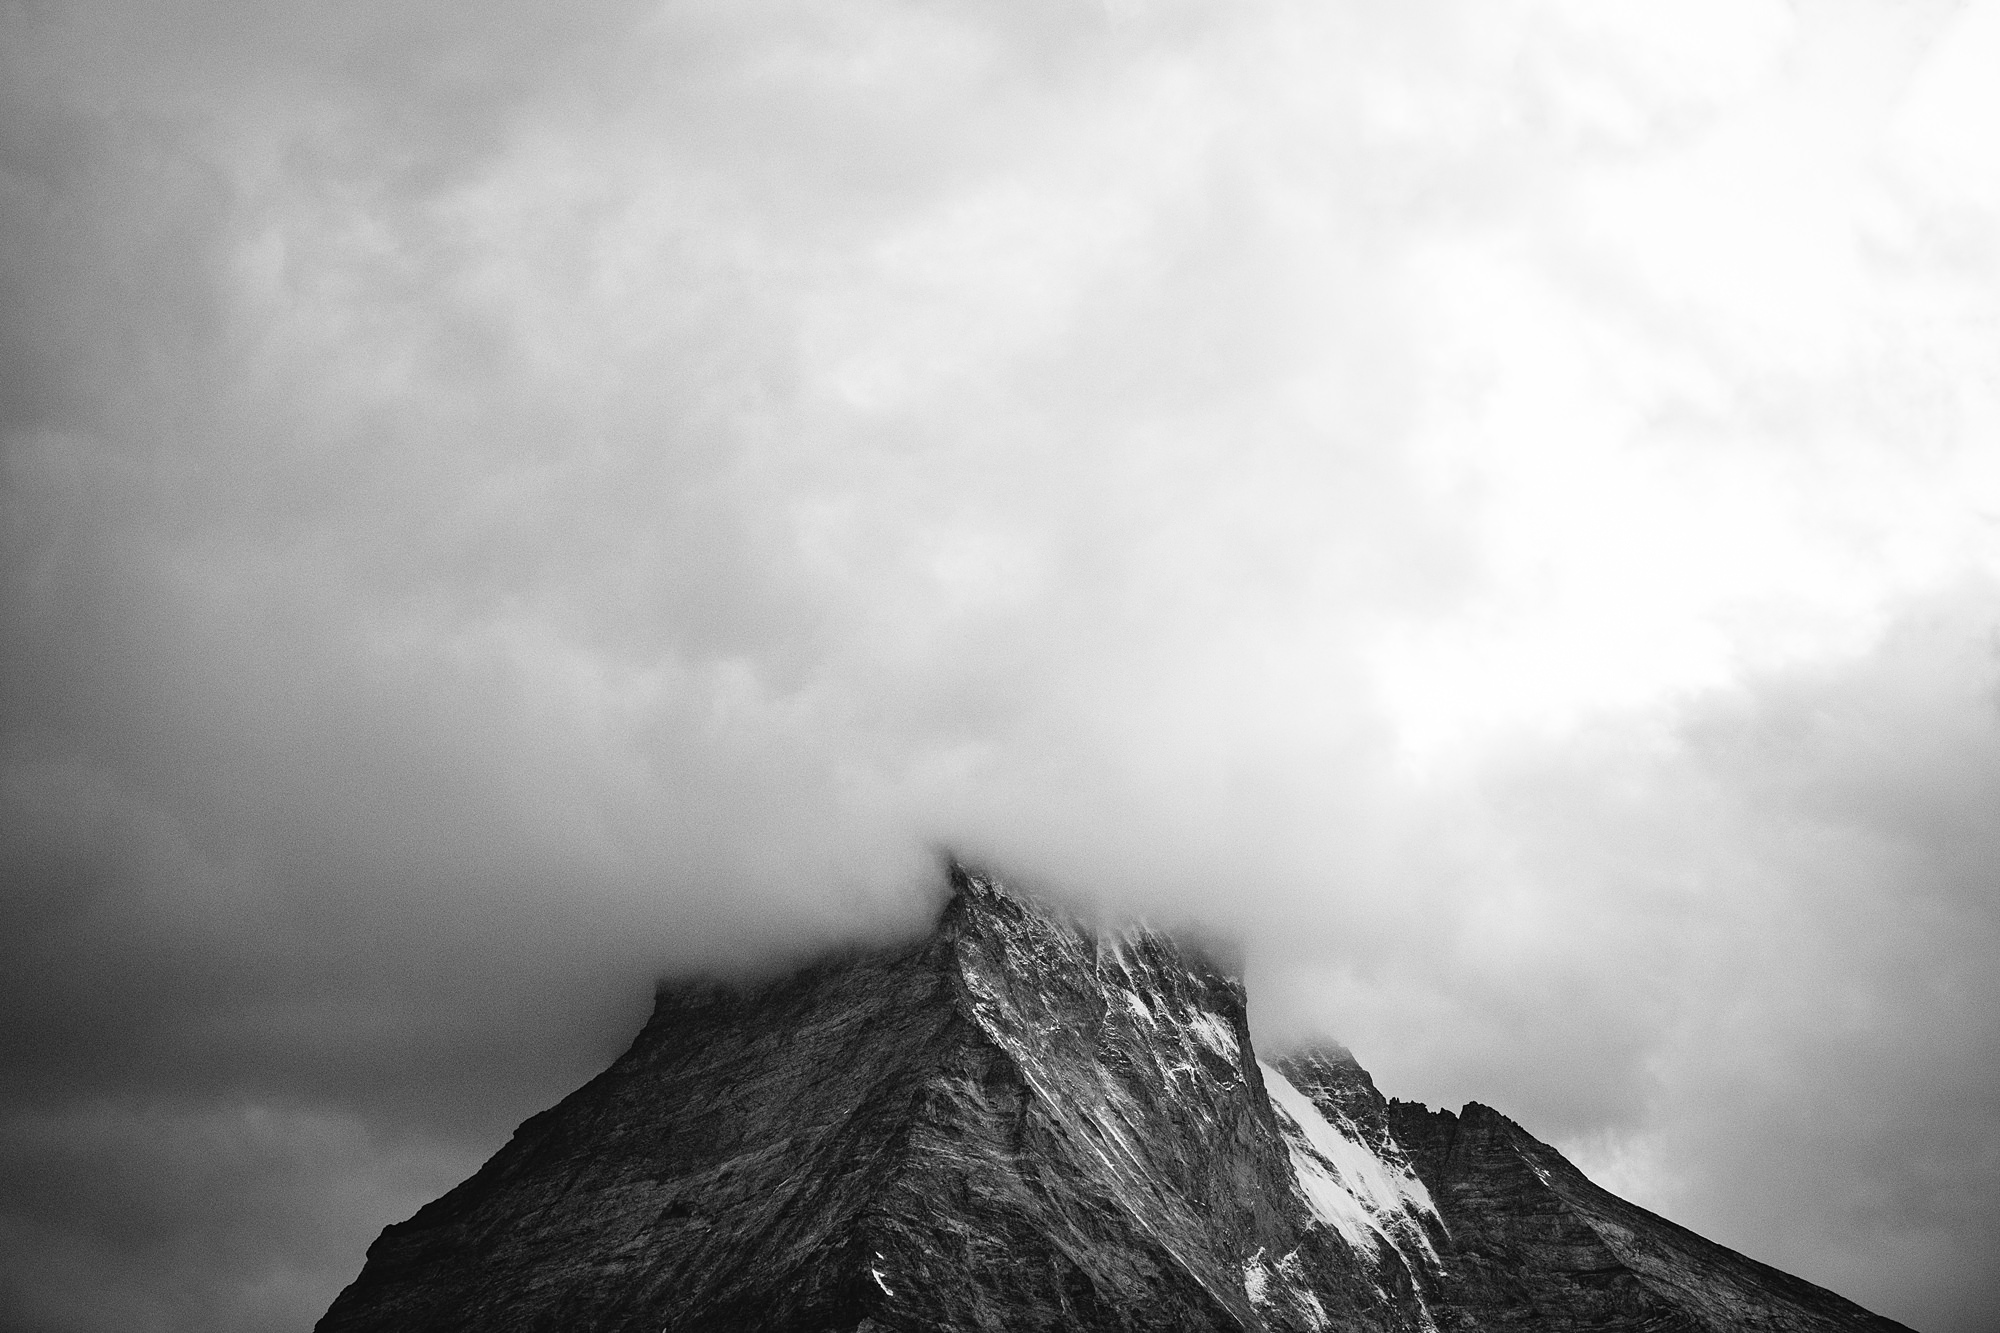 Zermatt and Matterhorn, Switzerland // 2019